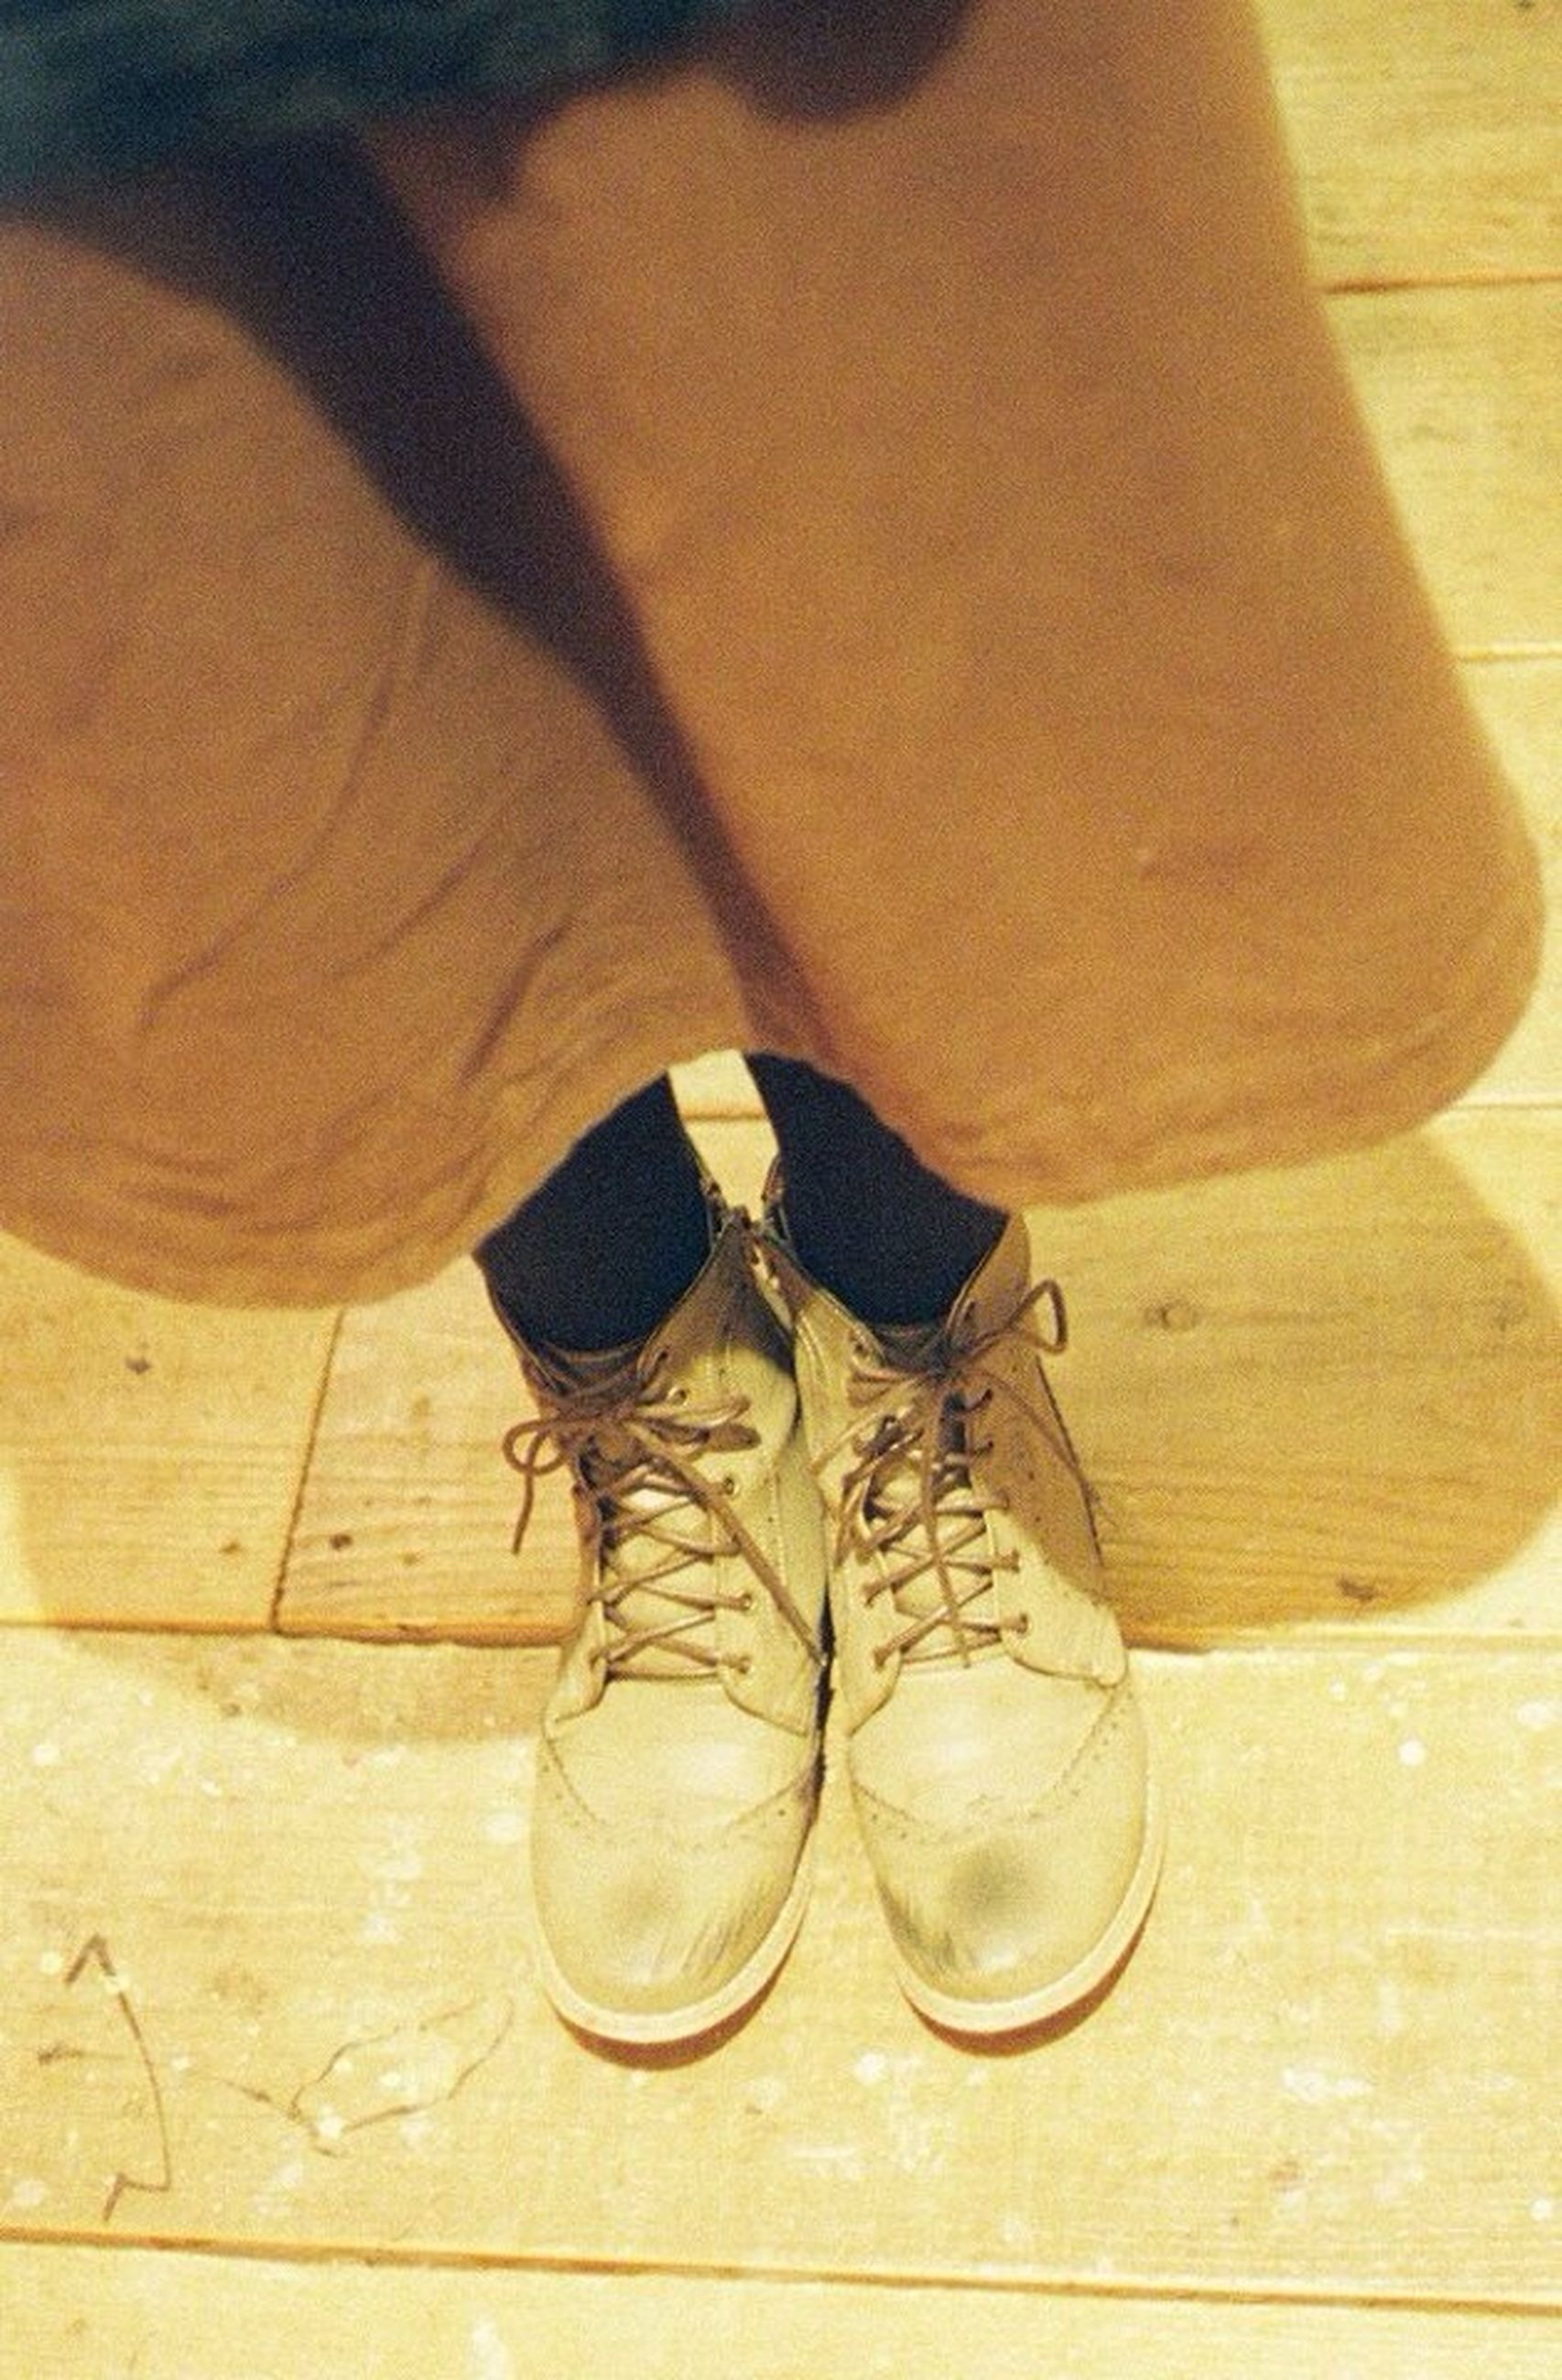 indoors, shoe, low section, high angle view, wood - material, person, table, still life, standing, footwear, close-up, fashion, wooden, hardwood floor, flooring, brown, pair, shadow